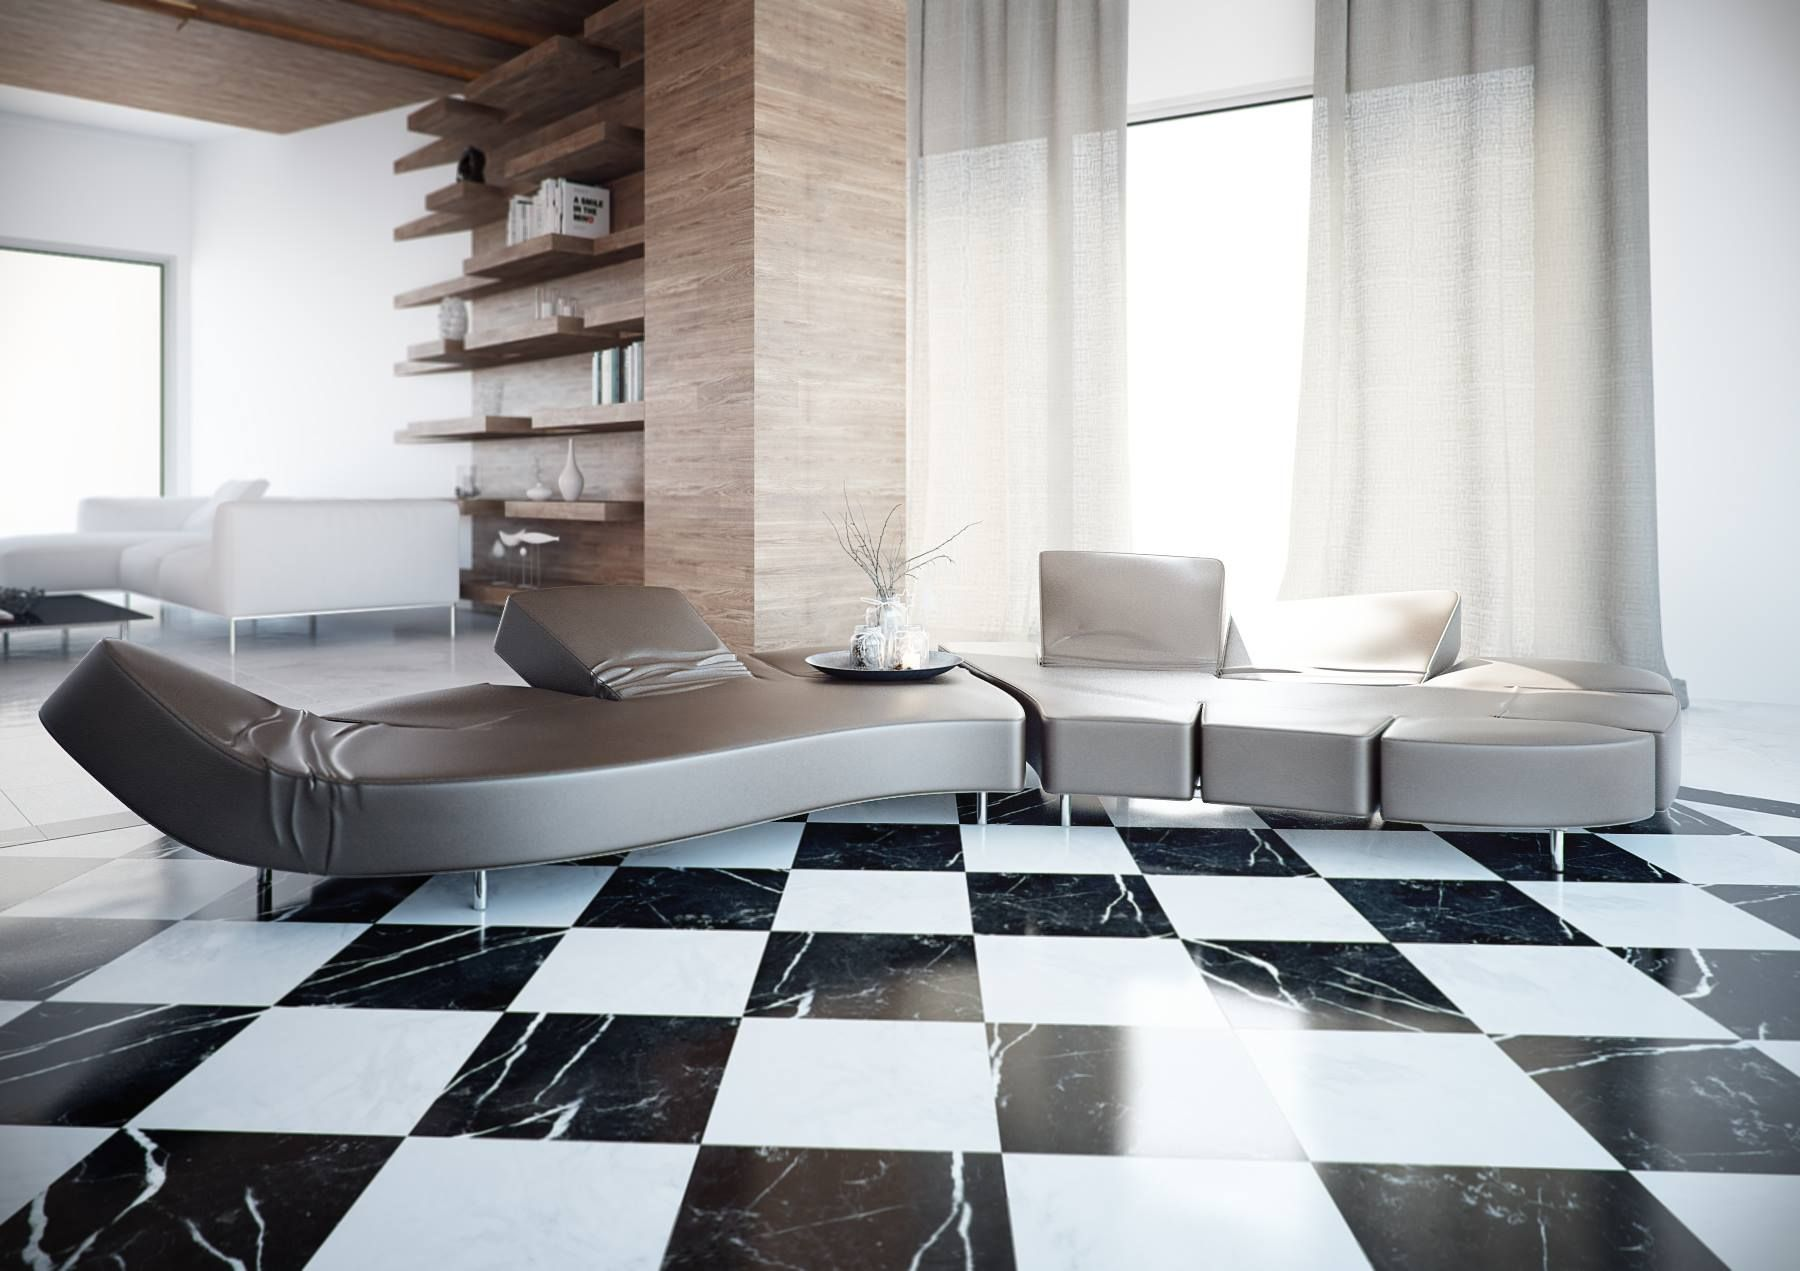 Home floor tiles design gallery home flooring design glamorous home interior design with a curved ceiling cosy brown glamorous home interior design with a dailygadgetfo Choice Image